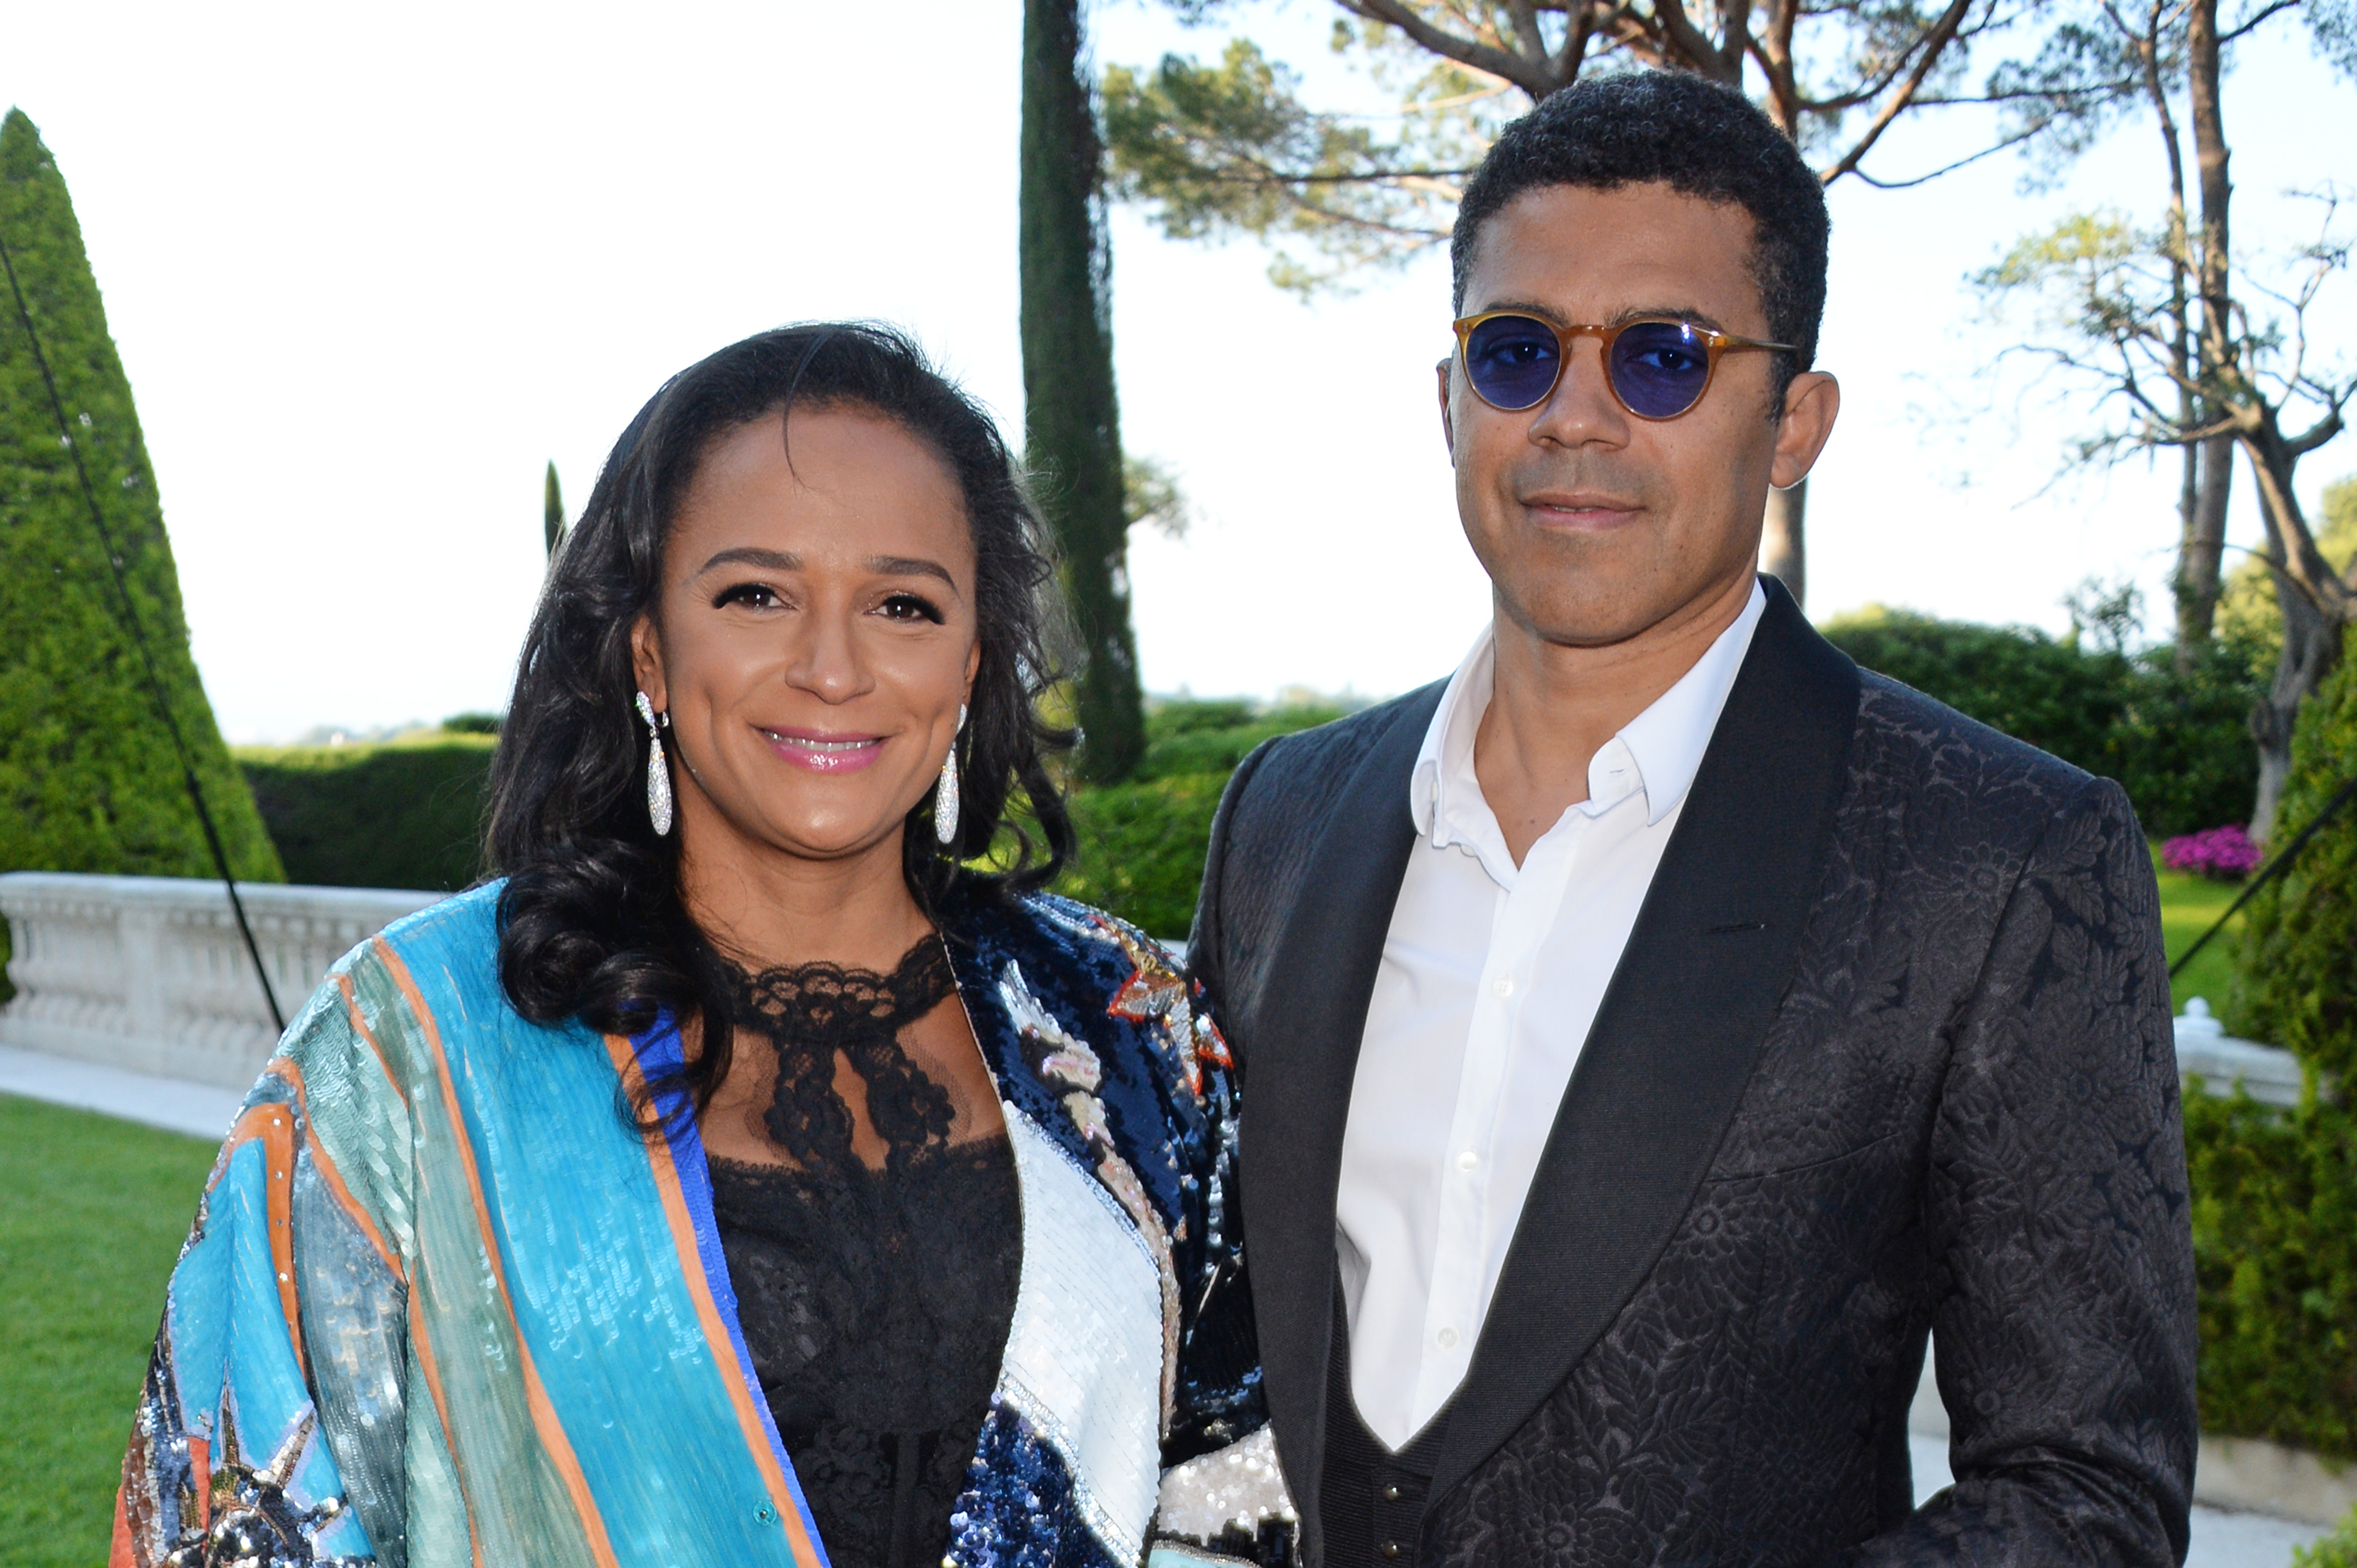 European fashion labels took millions from Isabel dos Santos